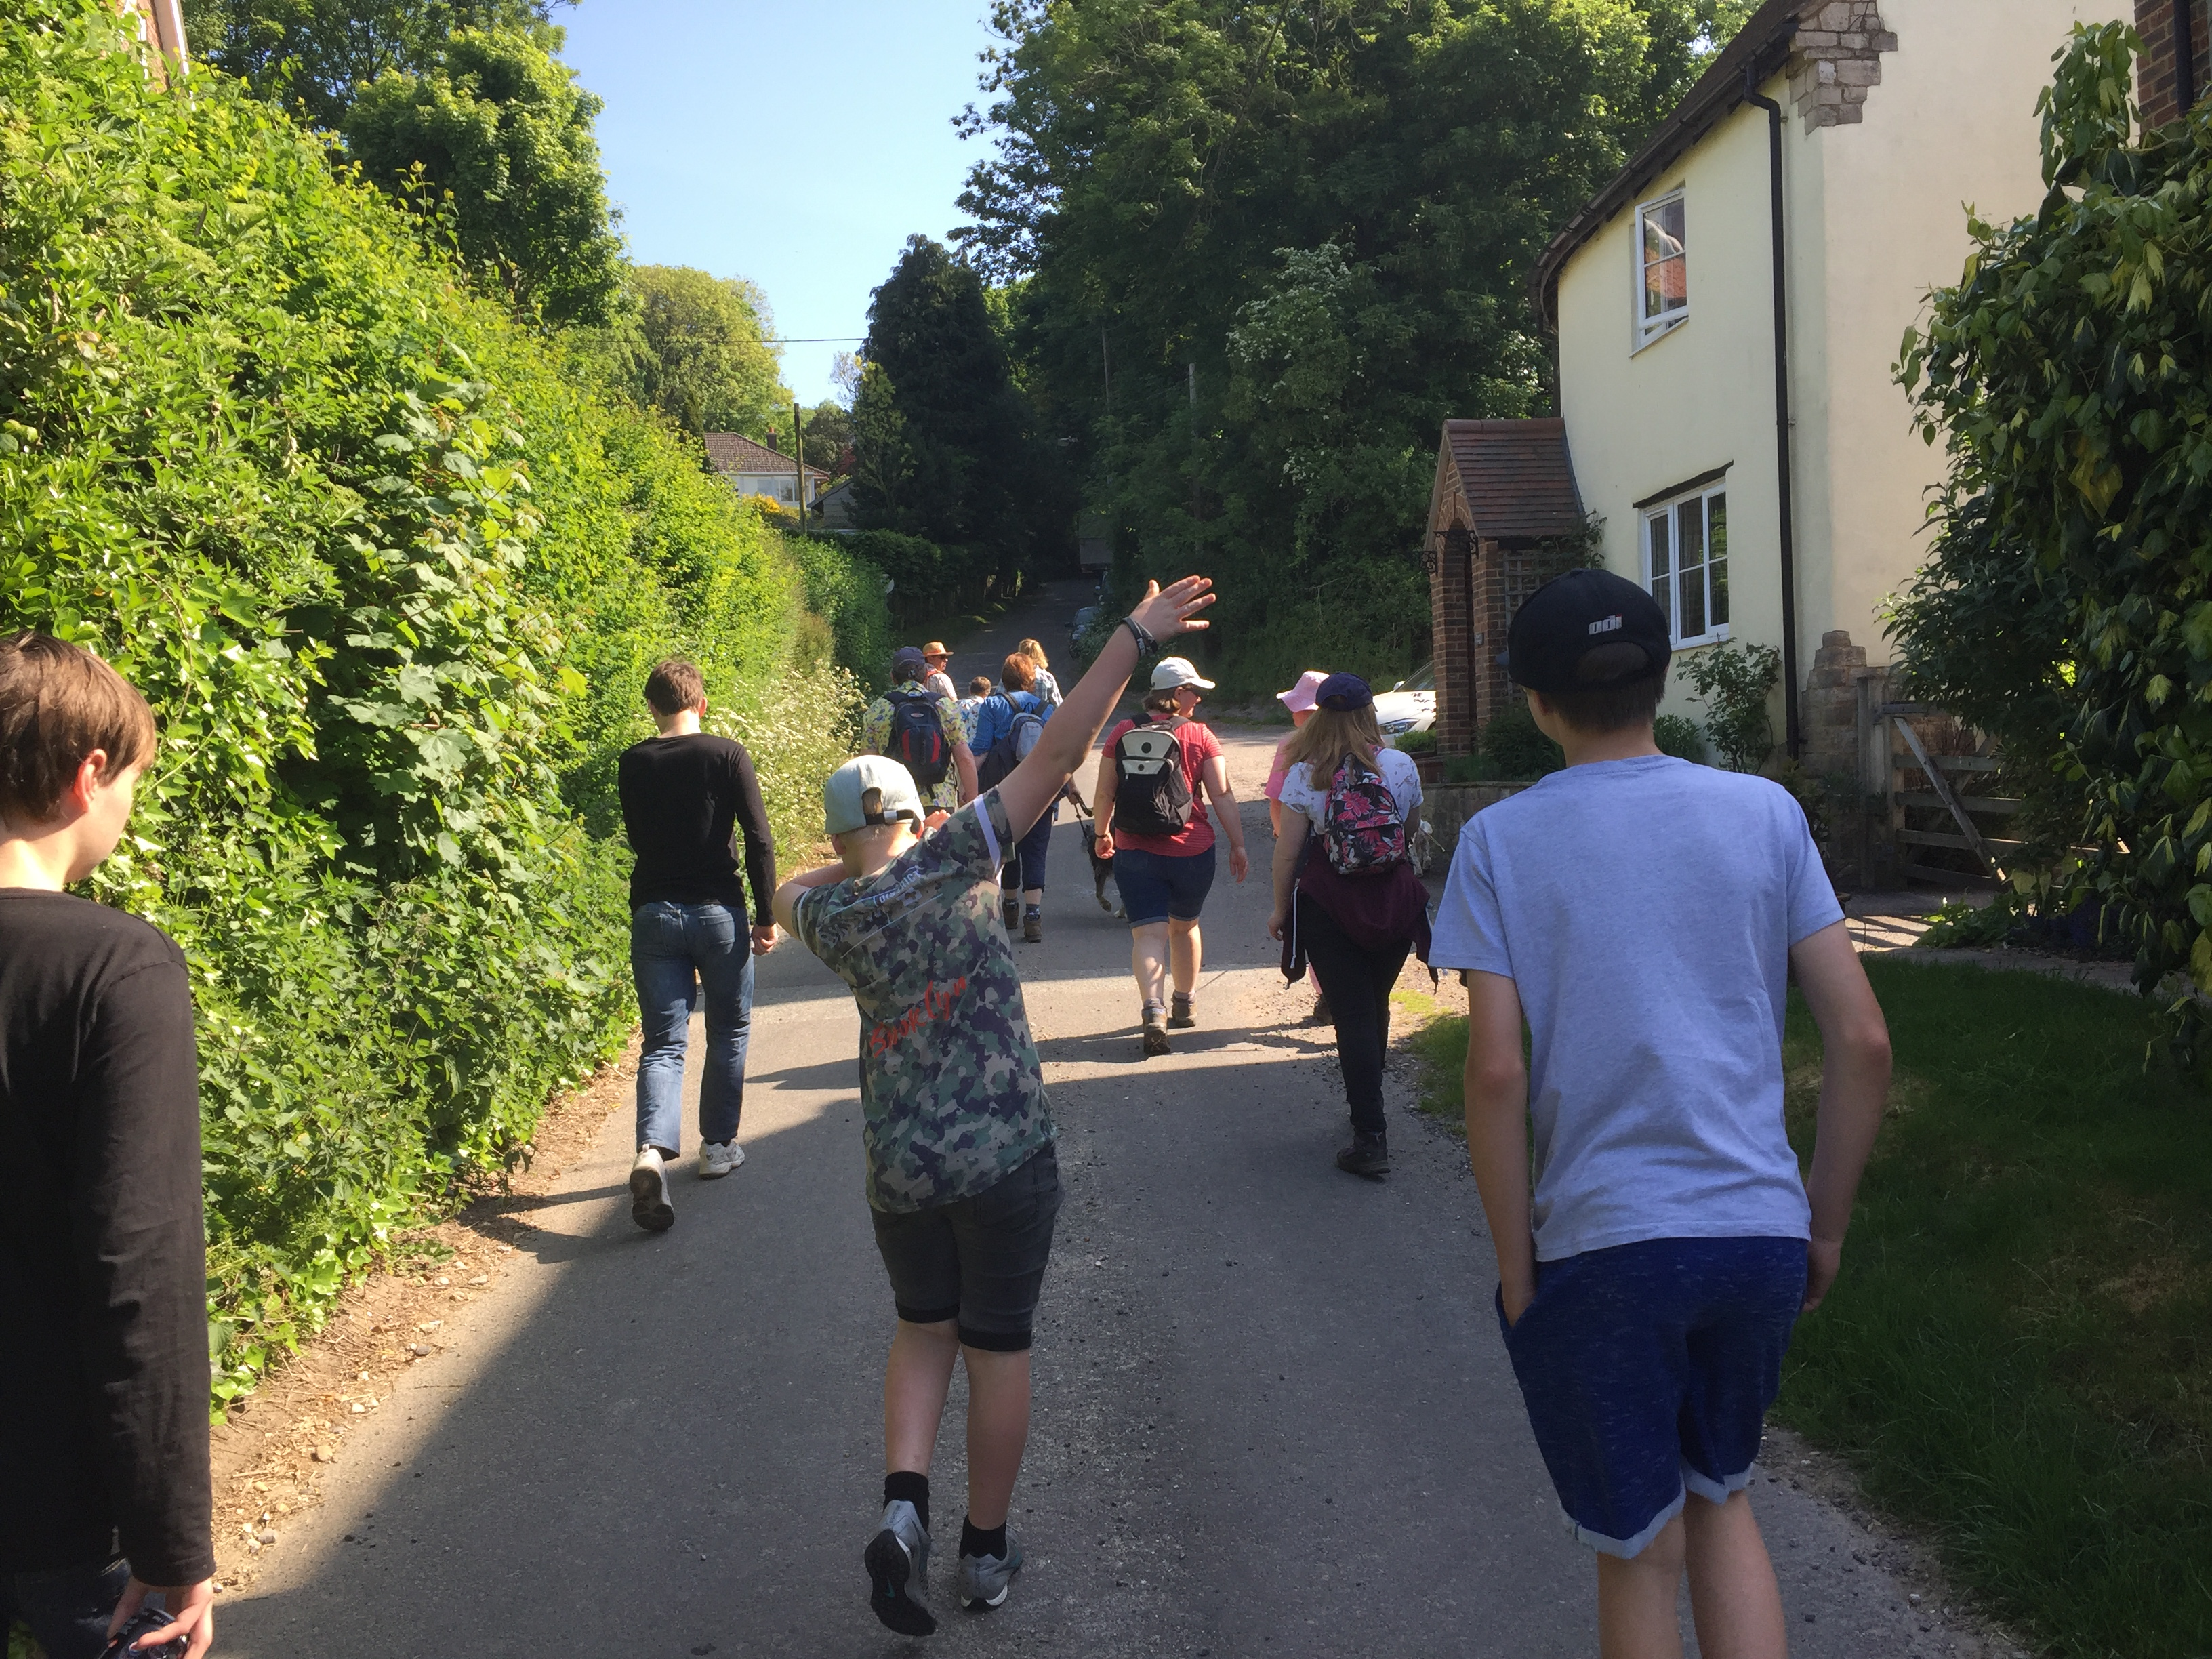 Leaving Tolpuddle